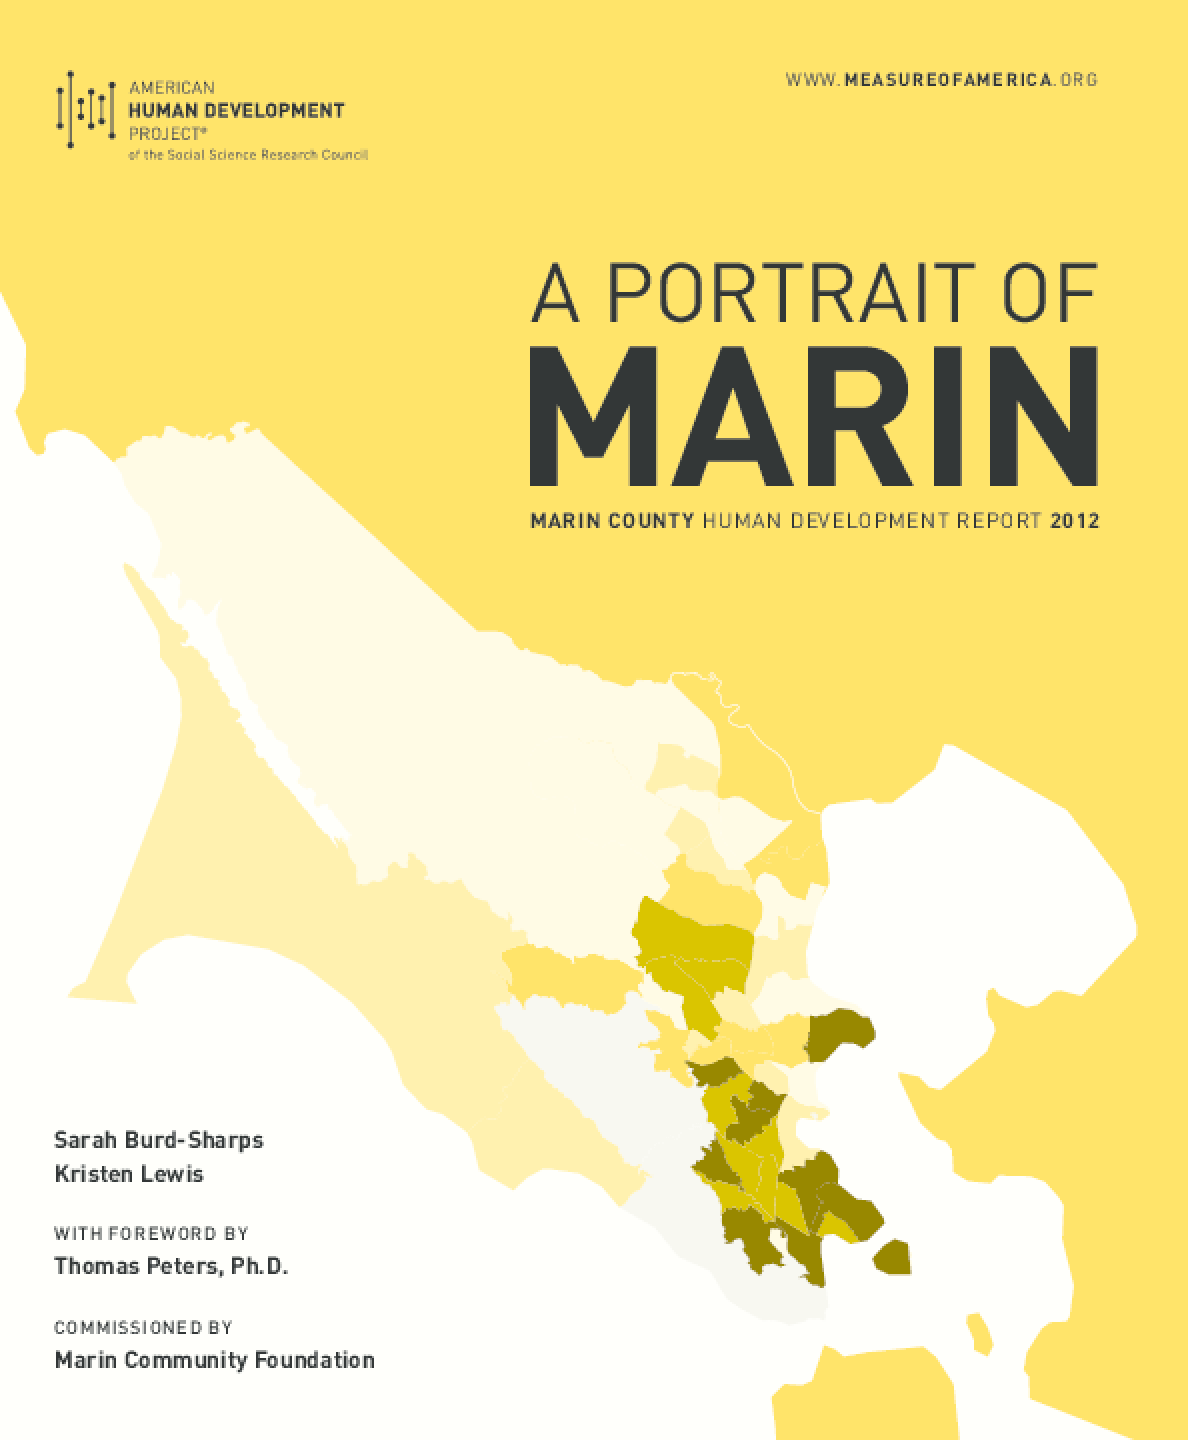 A Portrait of Marin: Marin County Human Development Report 2012